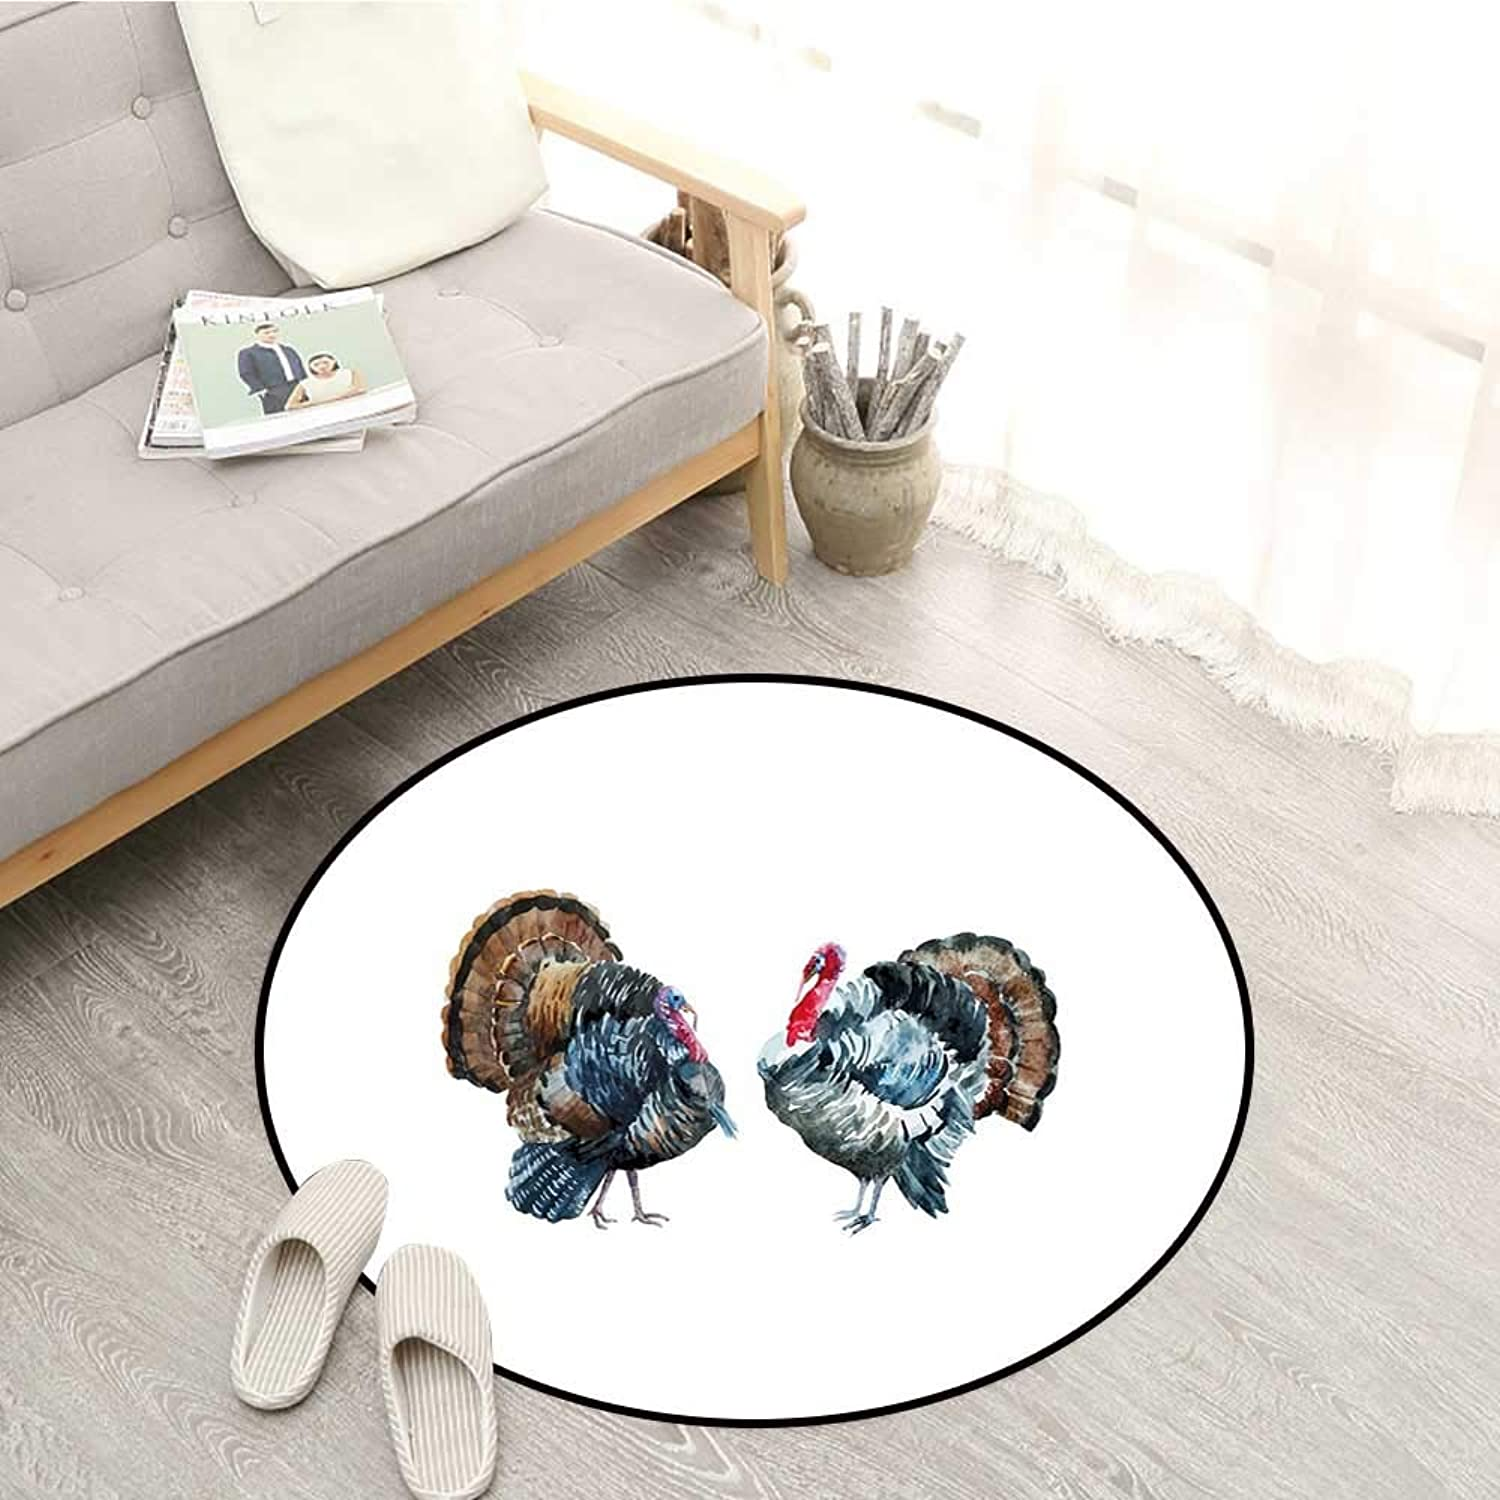 Turkey Skid-Resistant Rugs Watercolor Poultry Animals Brush Stroke Effect Agriculture Elements Birds Design Sofa Coffee Table Mat 3'11  Multicolor